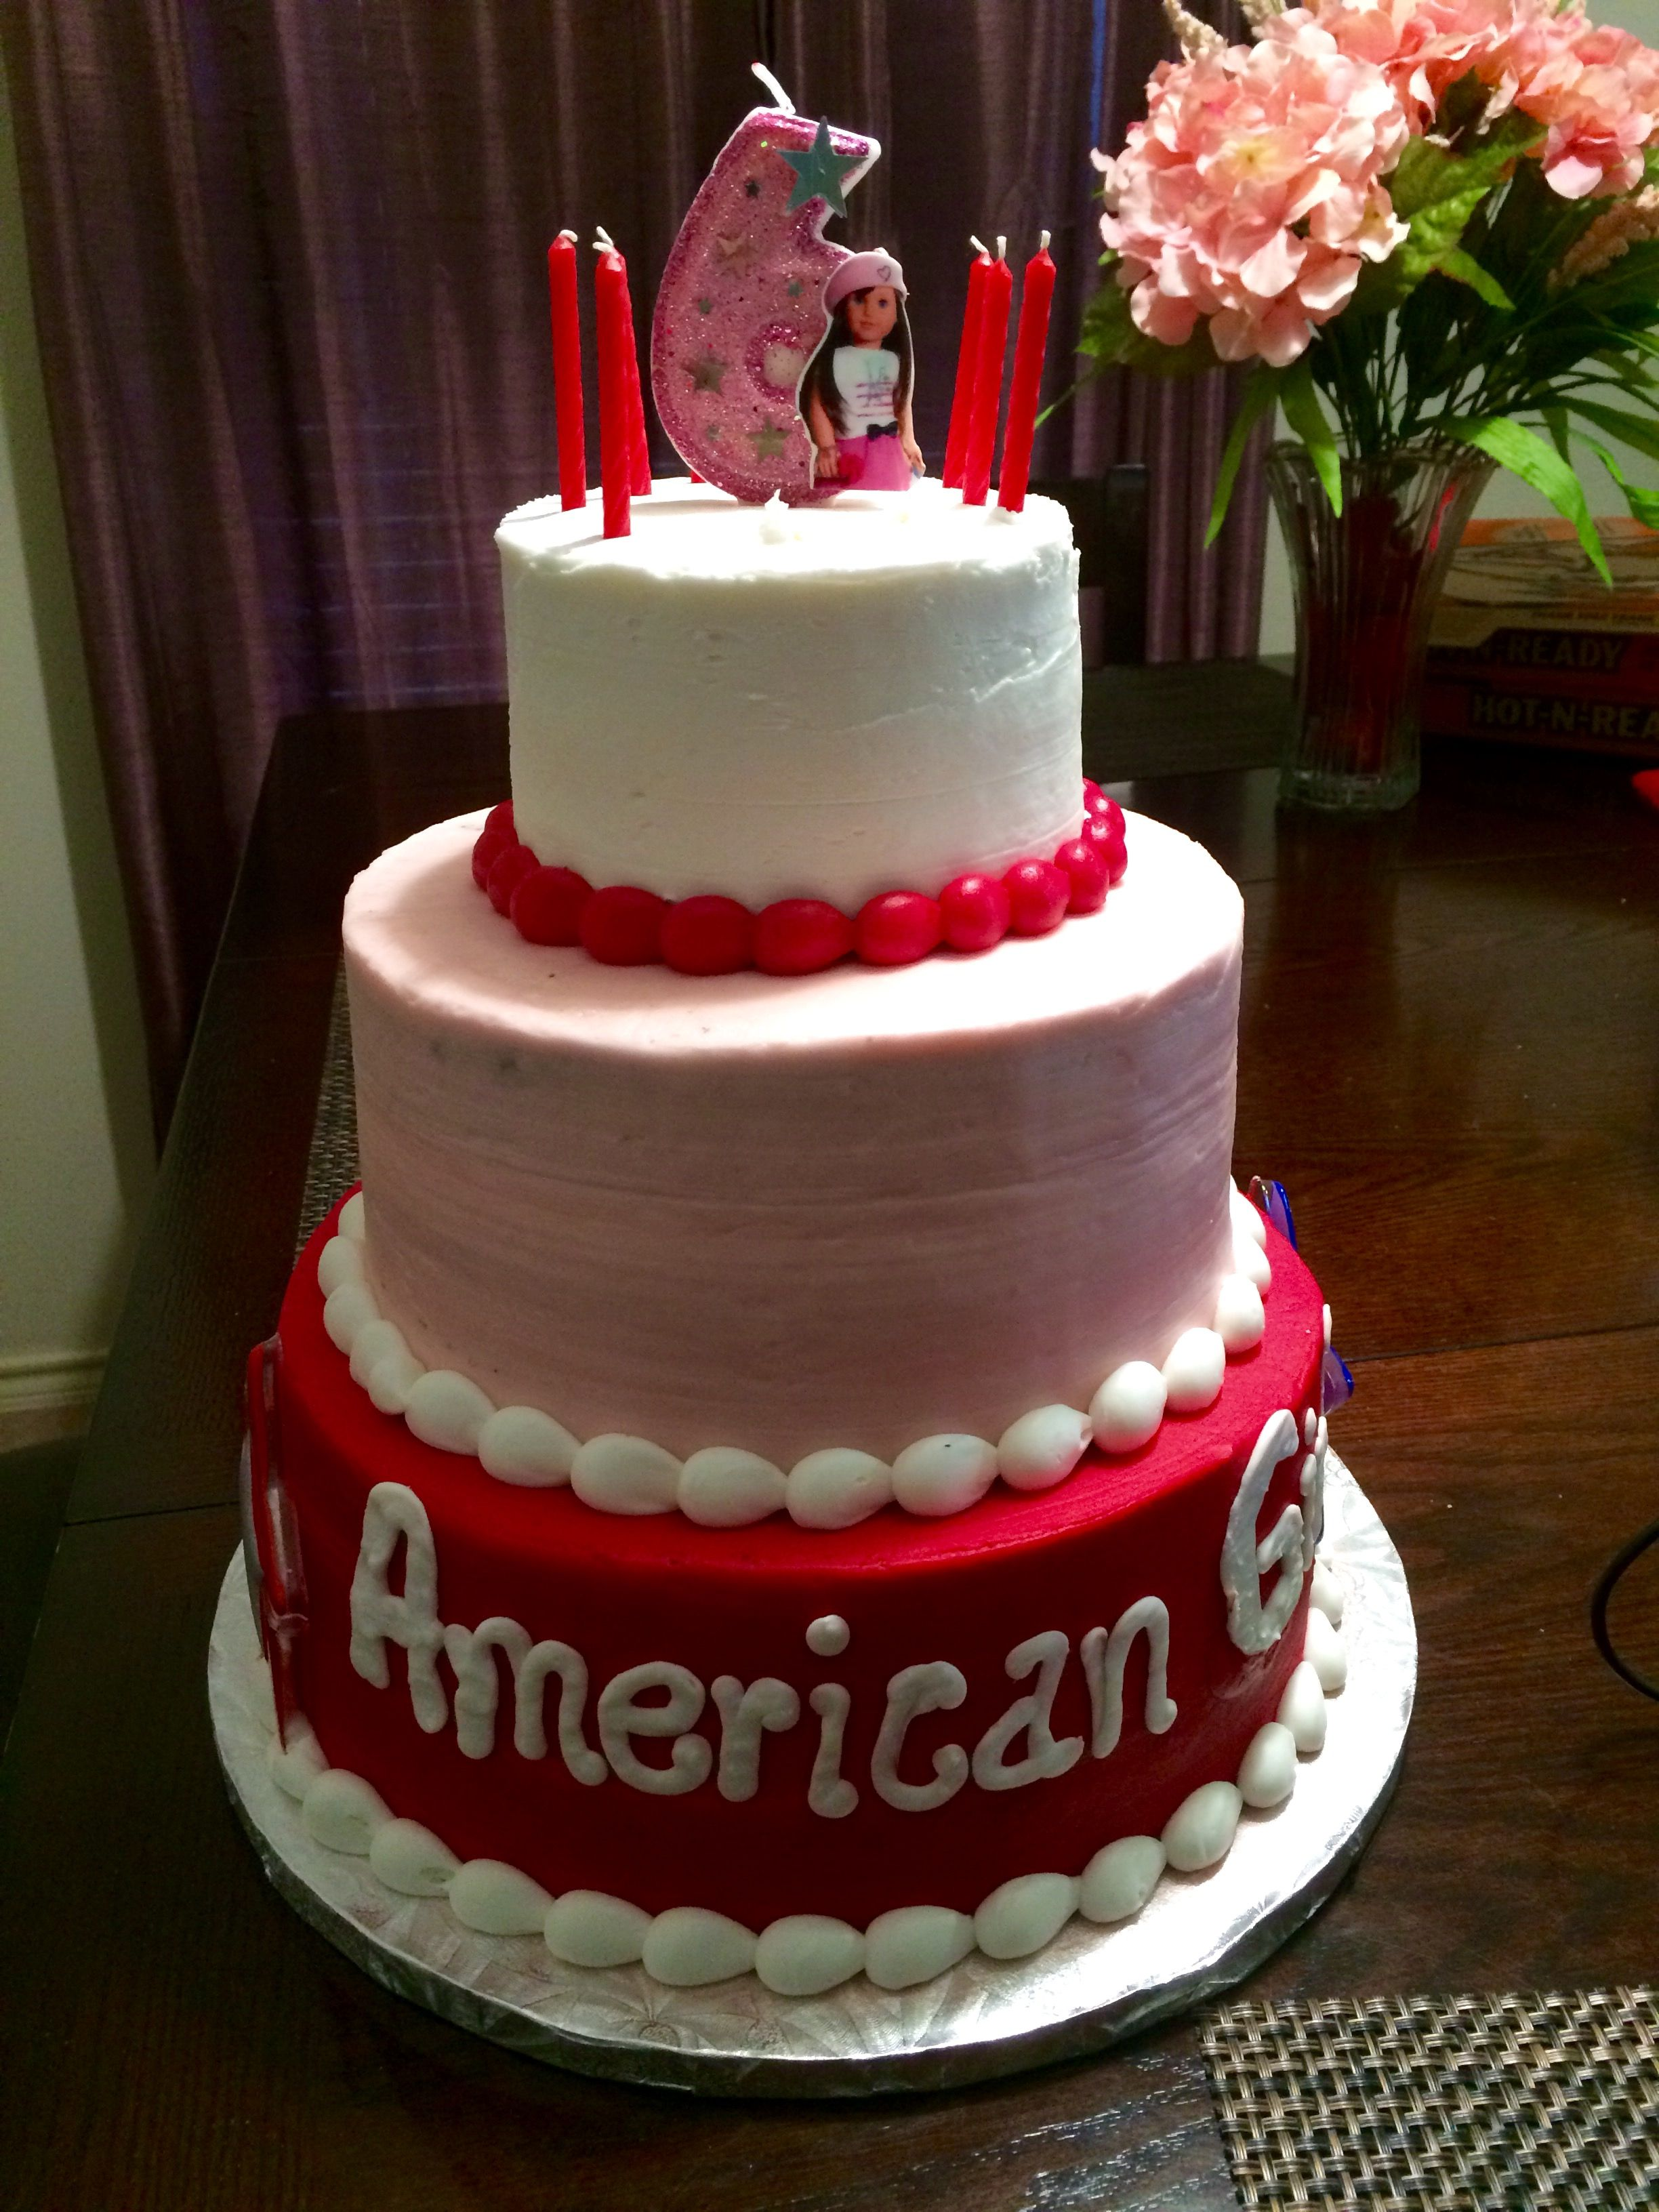 Awe Inspiring American Girl Cake From Sams Club 3 Tier American Girl Cakes Funny Birthday Cards Online Inifofree Goldxyz